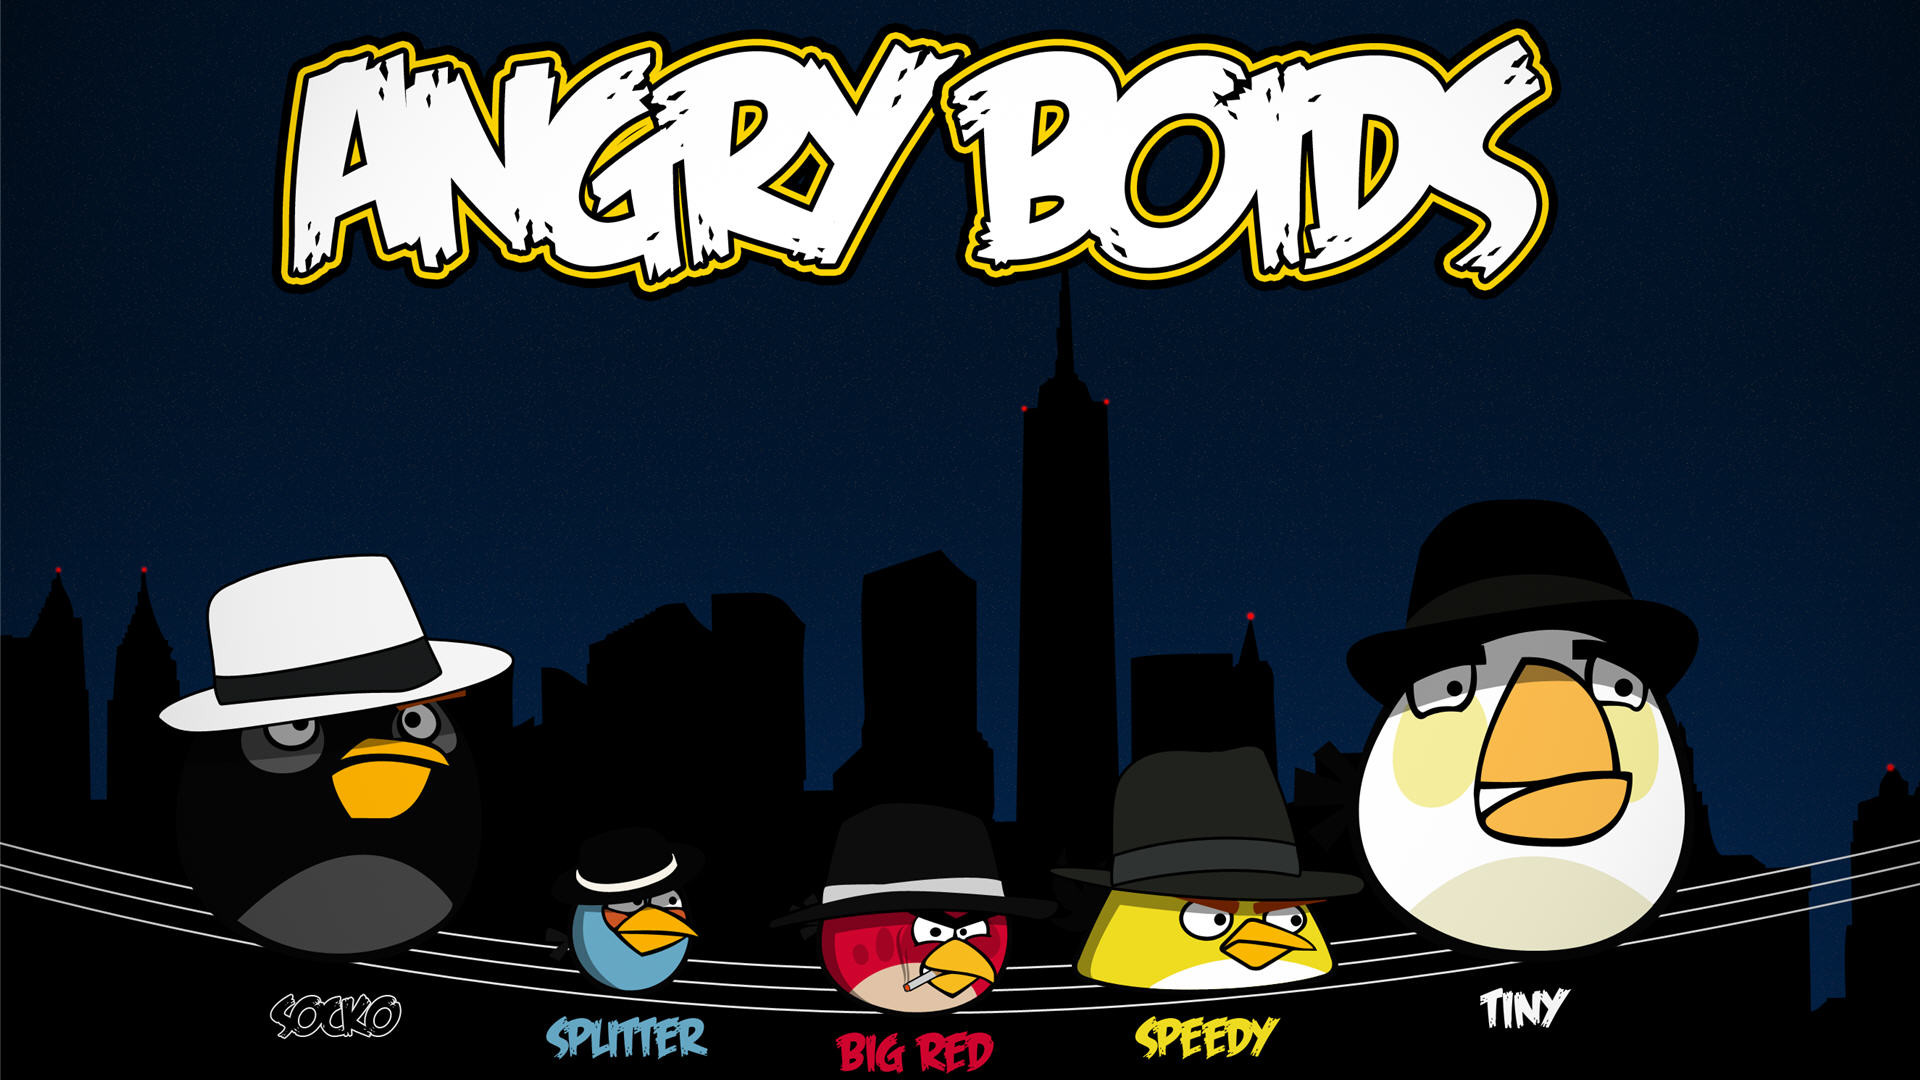 Angry Birds Gangster Wallpaper